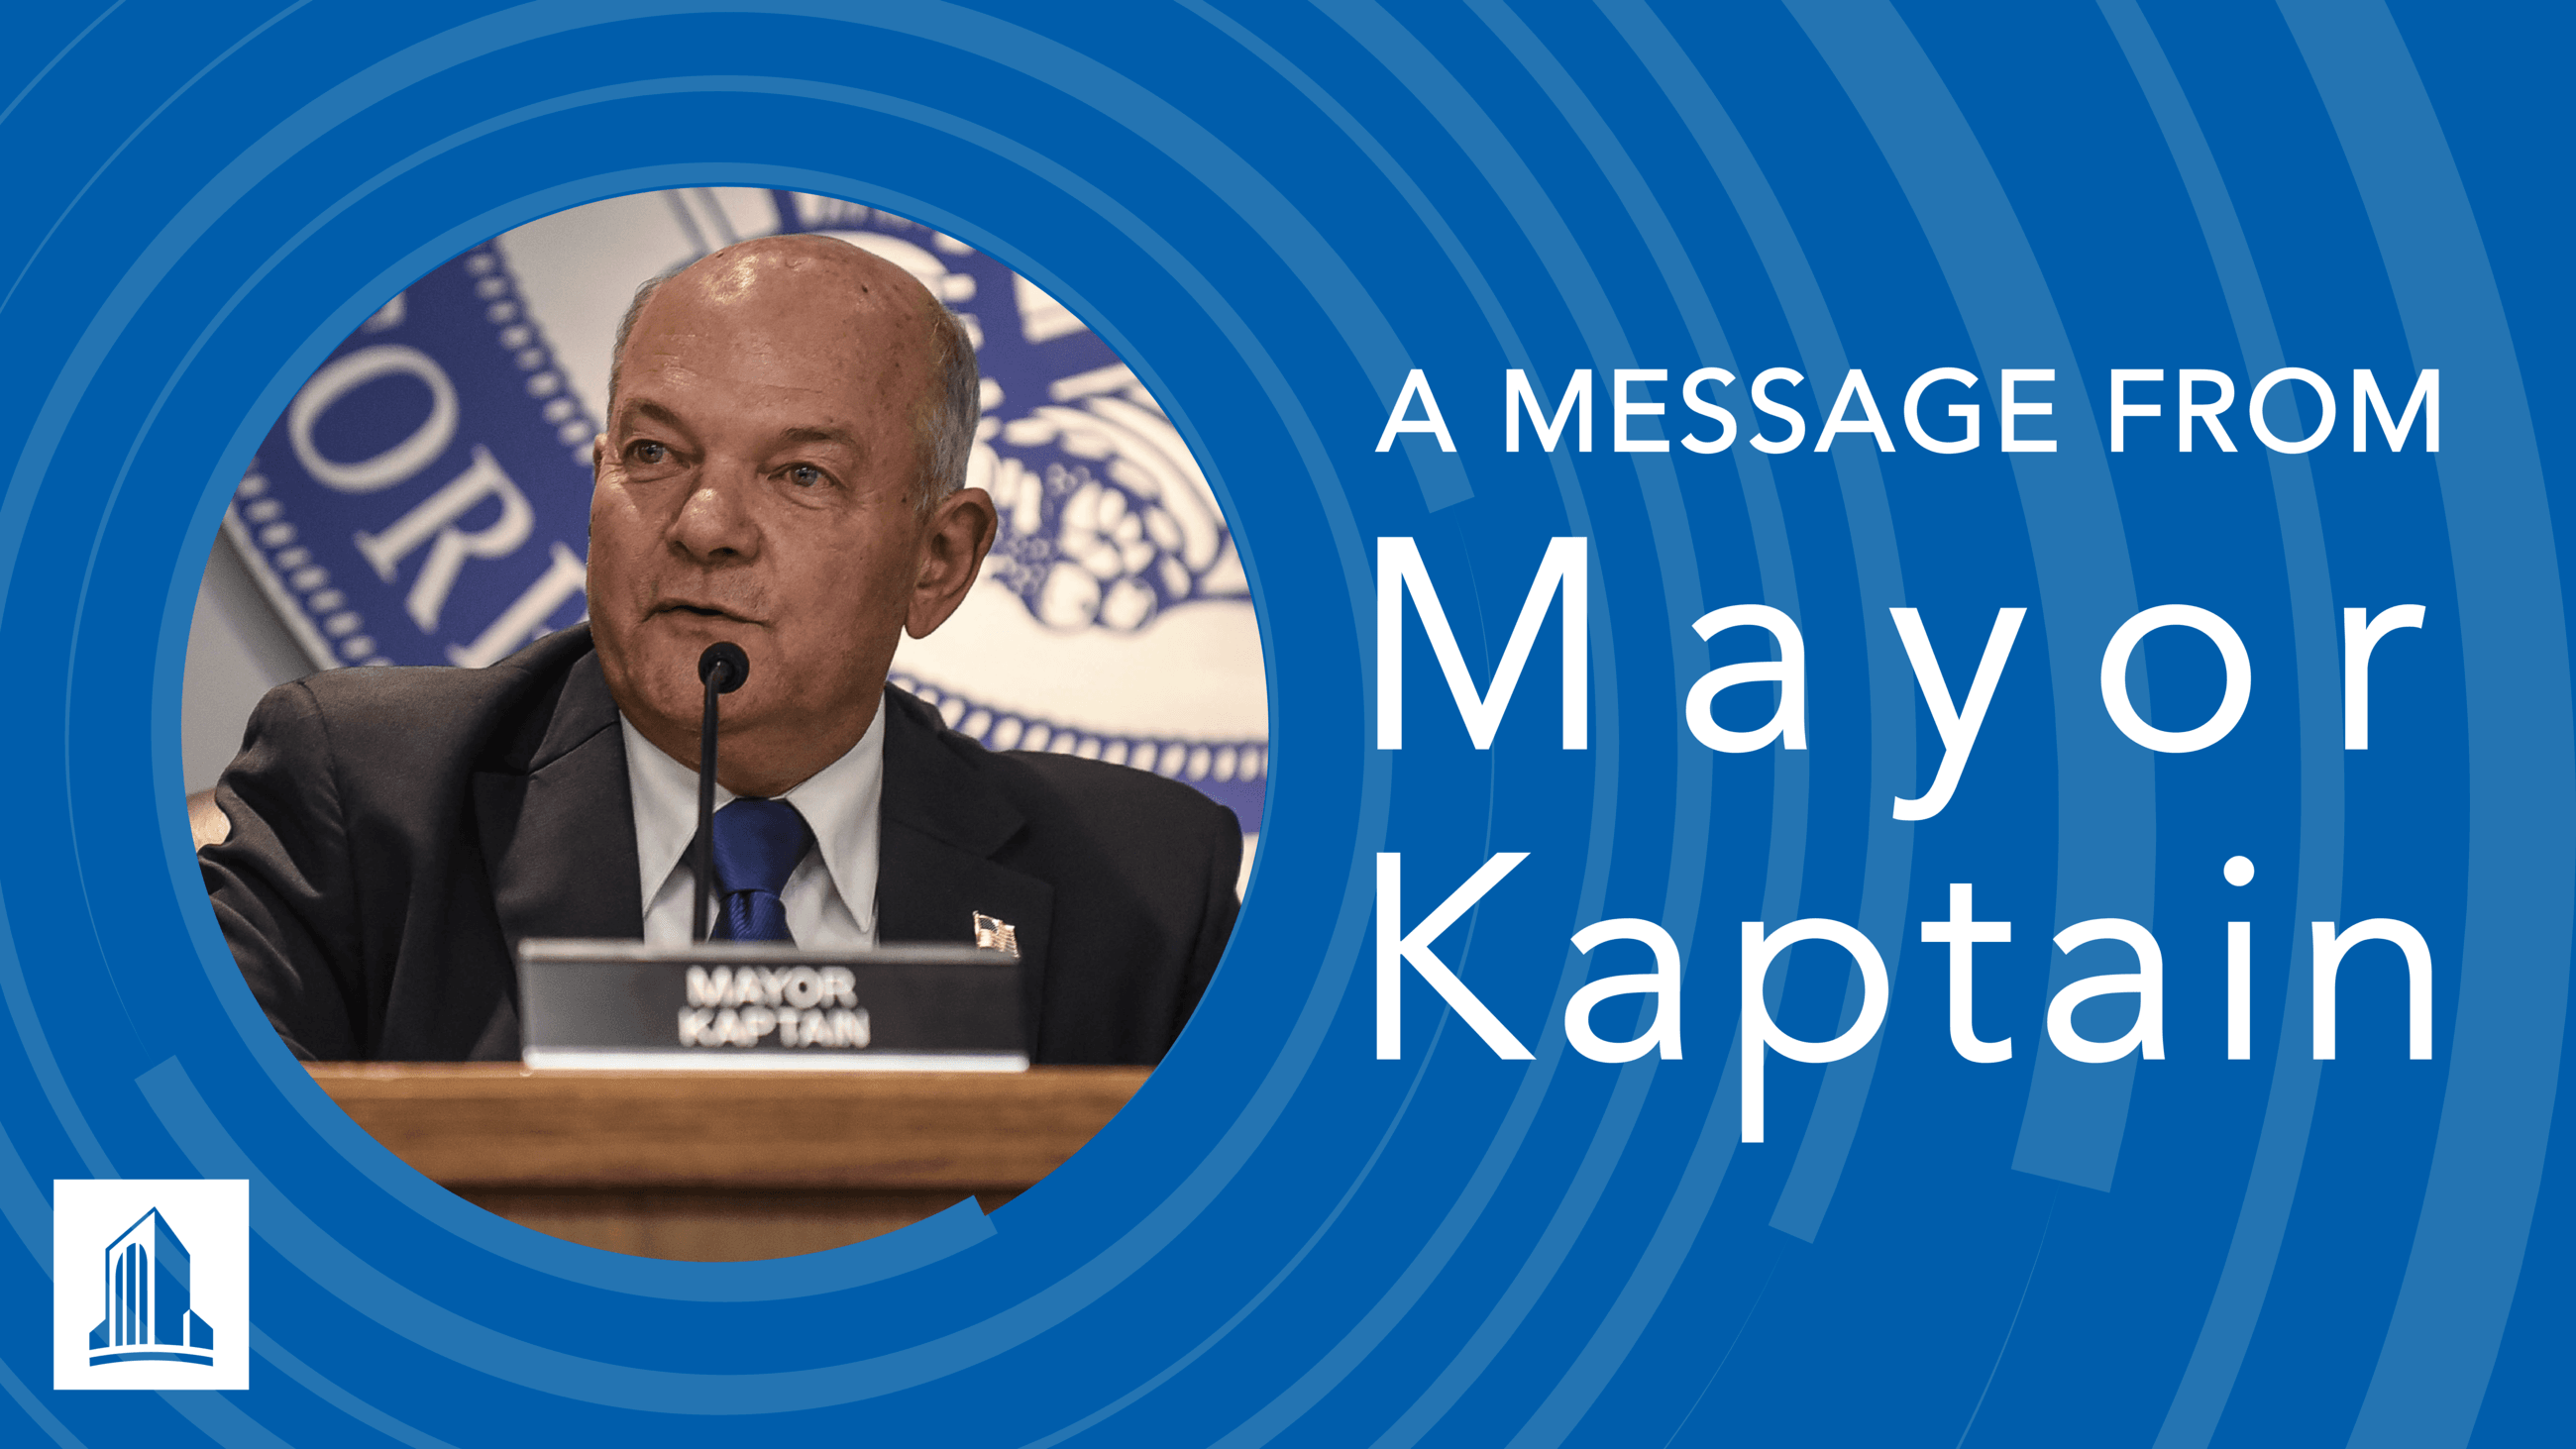 A message from Mayor Kaptain with headshot